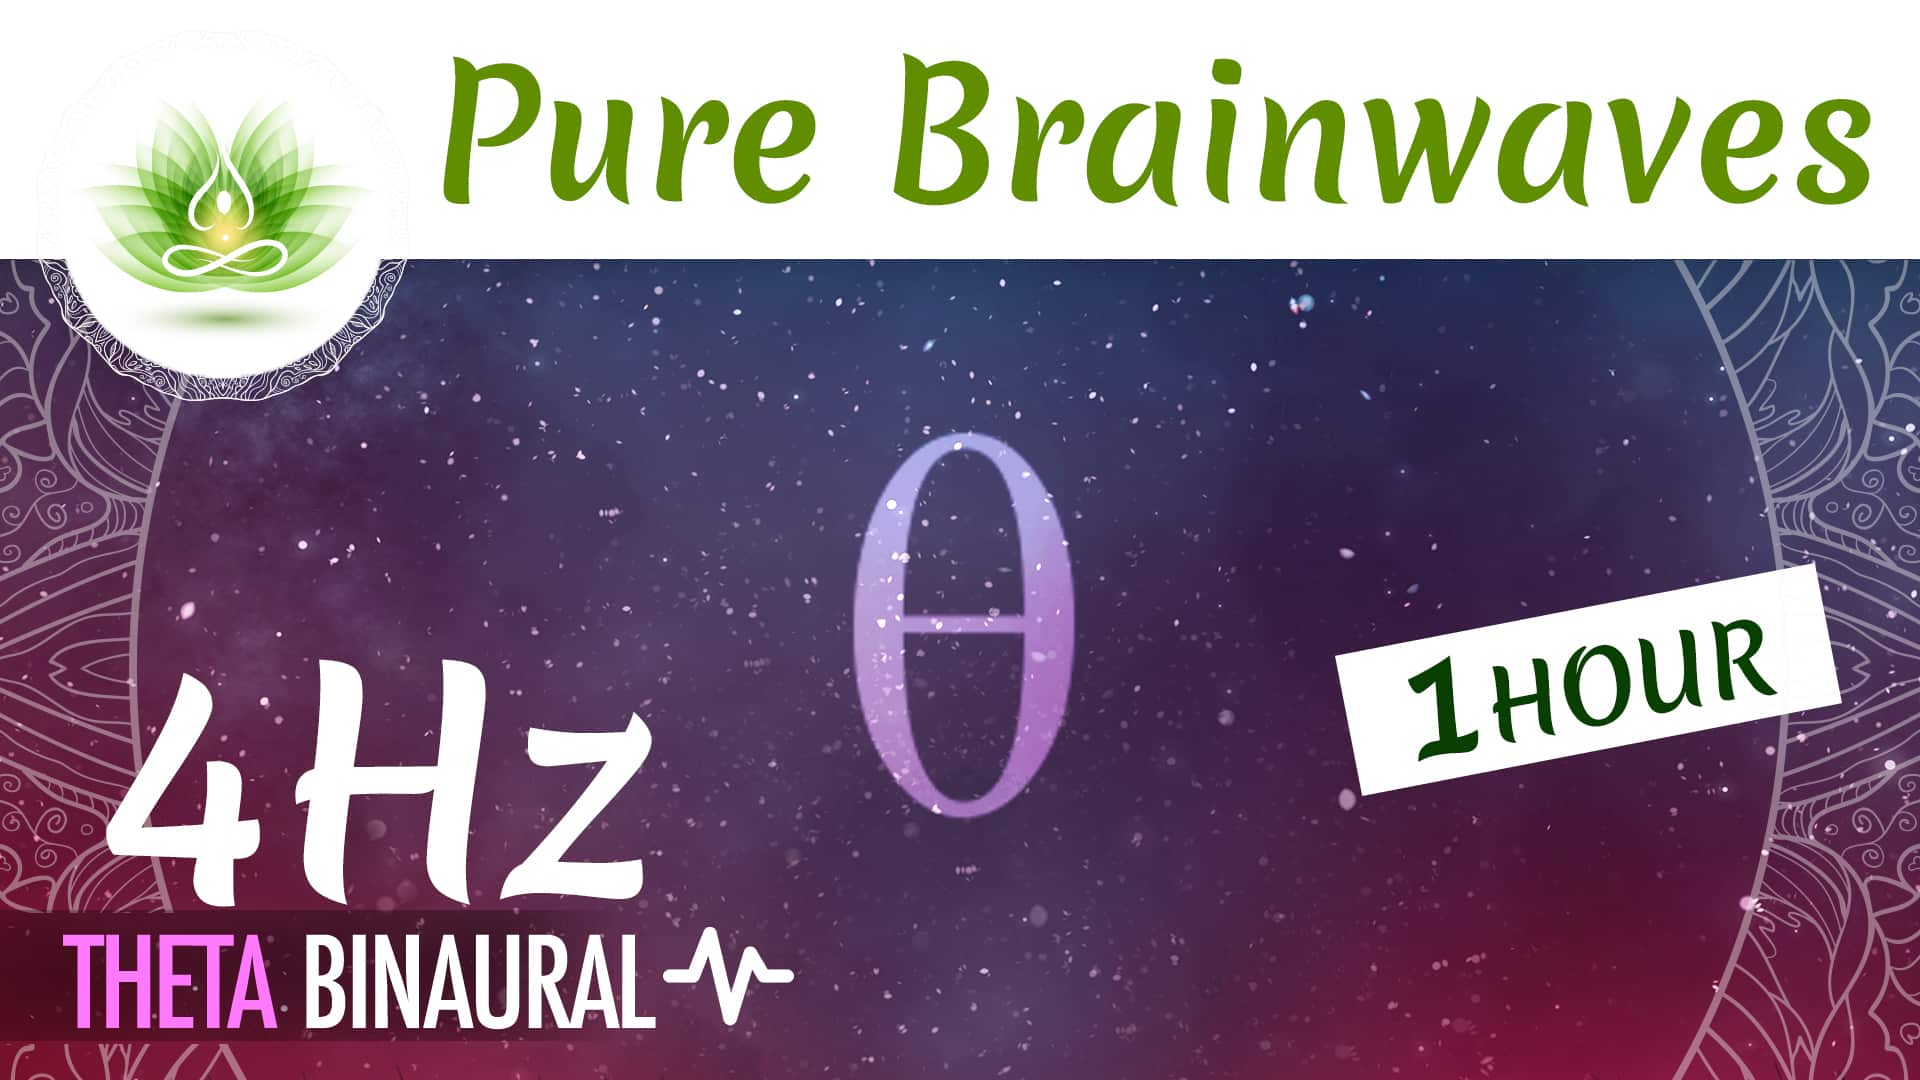 Pure-Brainwaves-Theta-4Hz